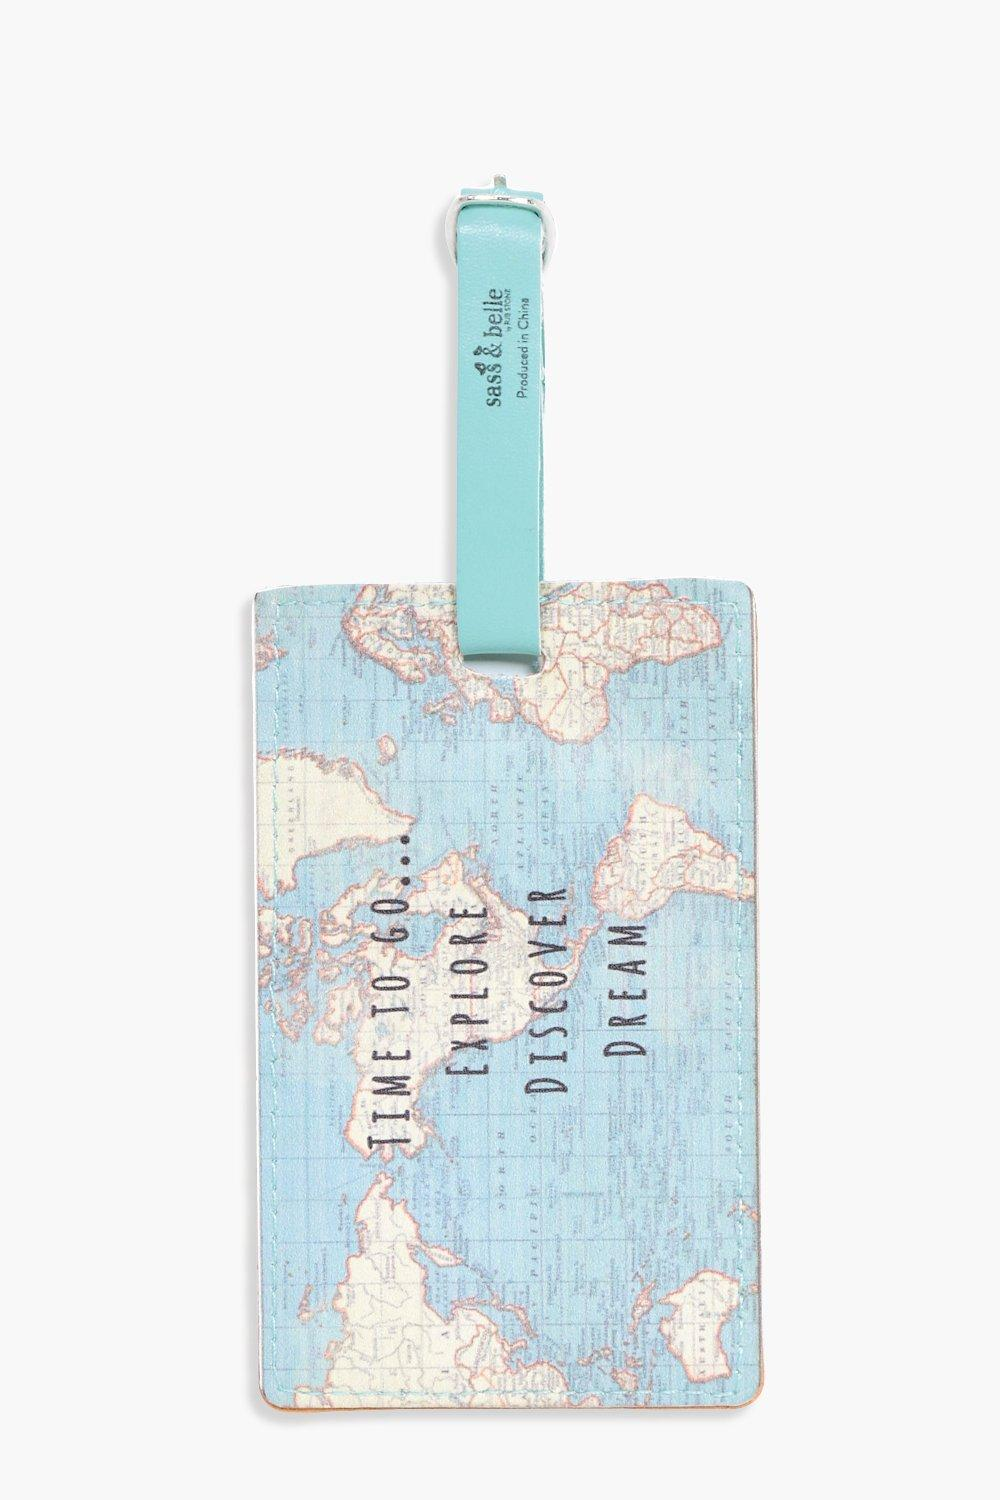 Map Time To Go Luggage Tag - multi - Vintage Map T